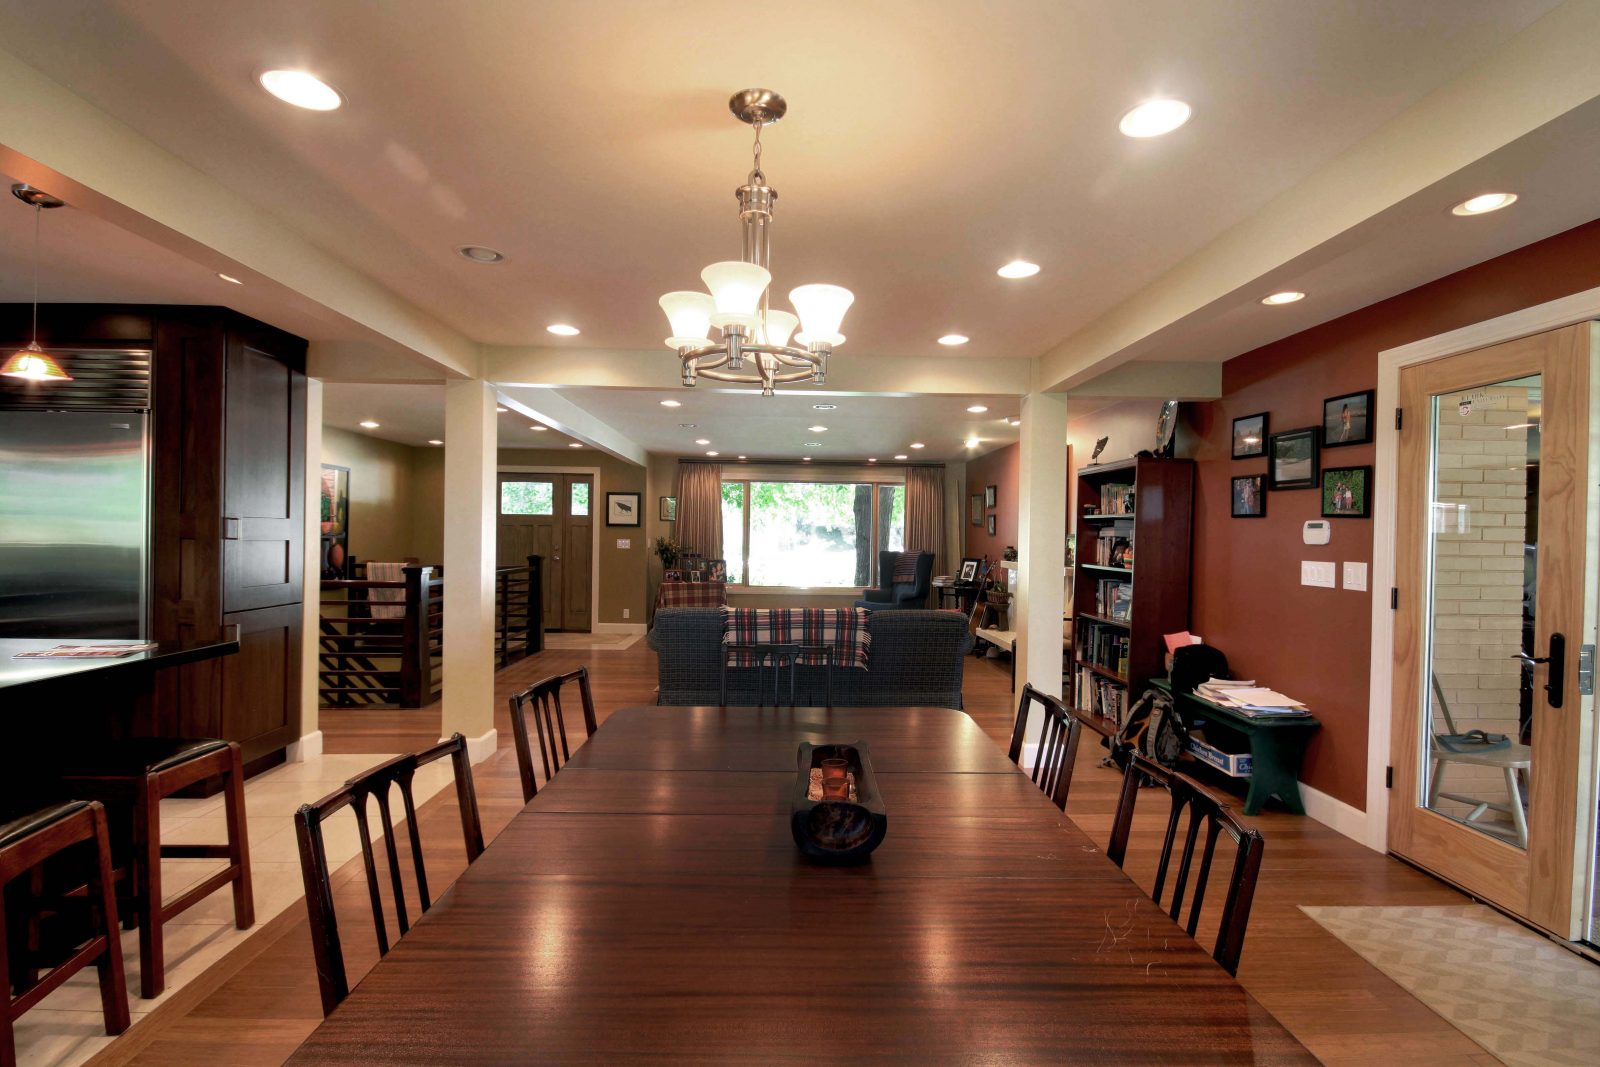 Interior Renovation_Dining Room_Rambler Additions | Renovation Design Group